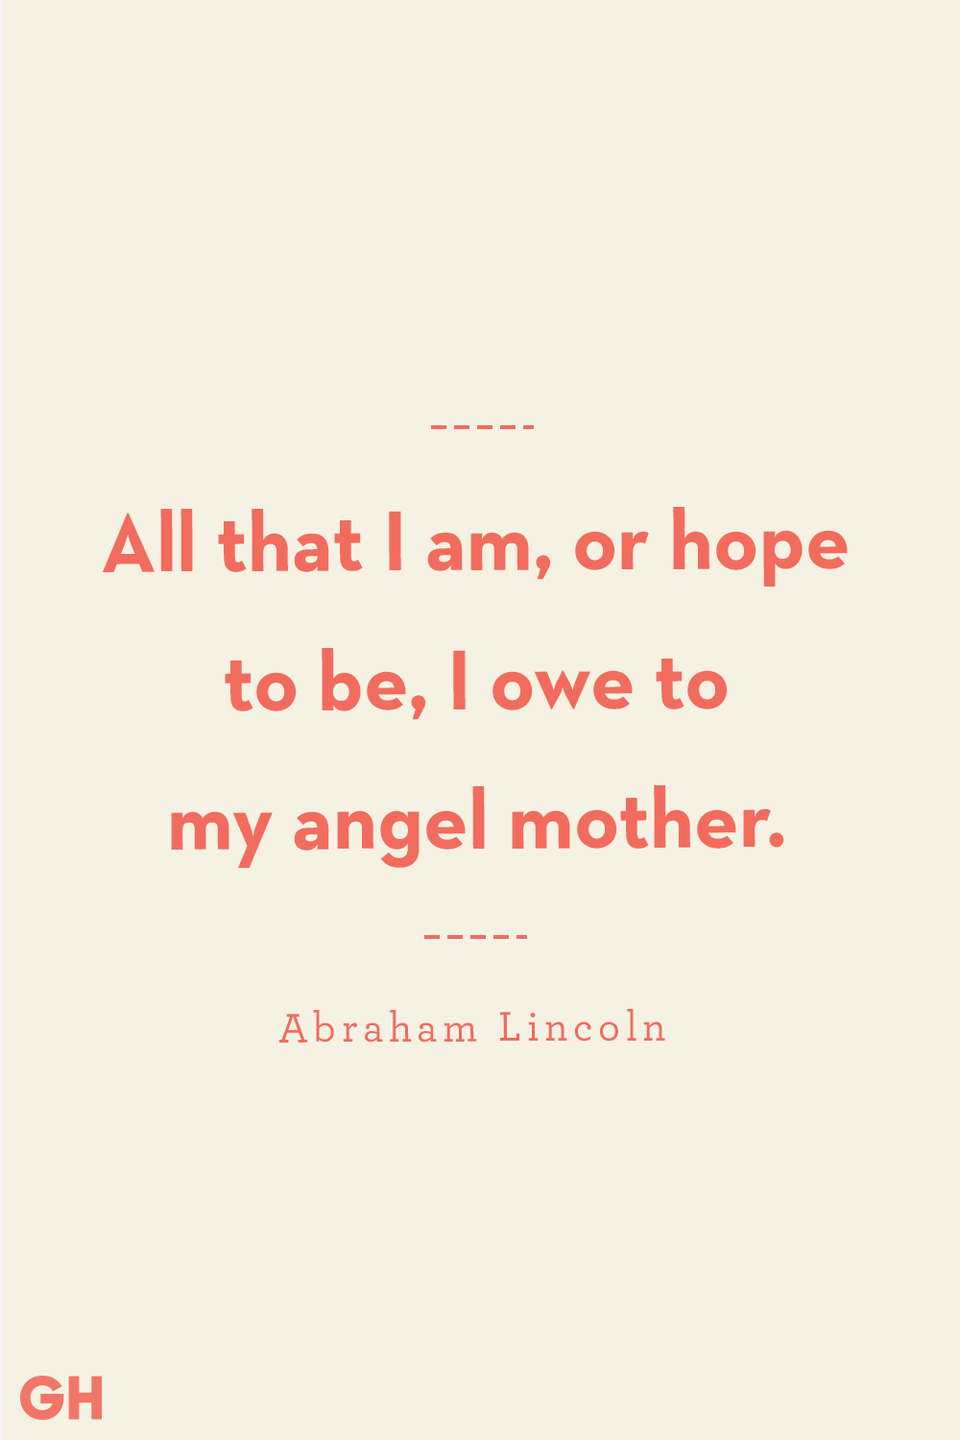 <p>All that I am, or hope to be, I owe to my angel mother. </p>